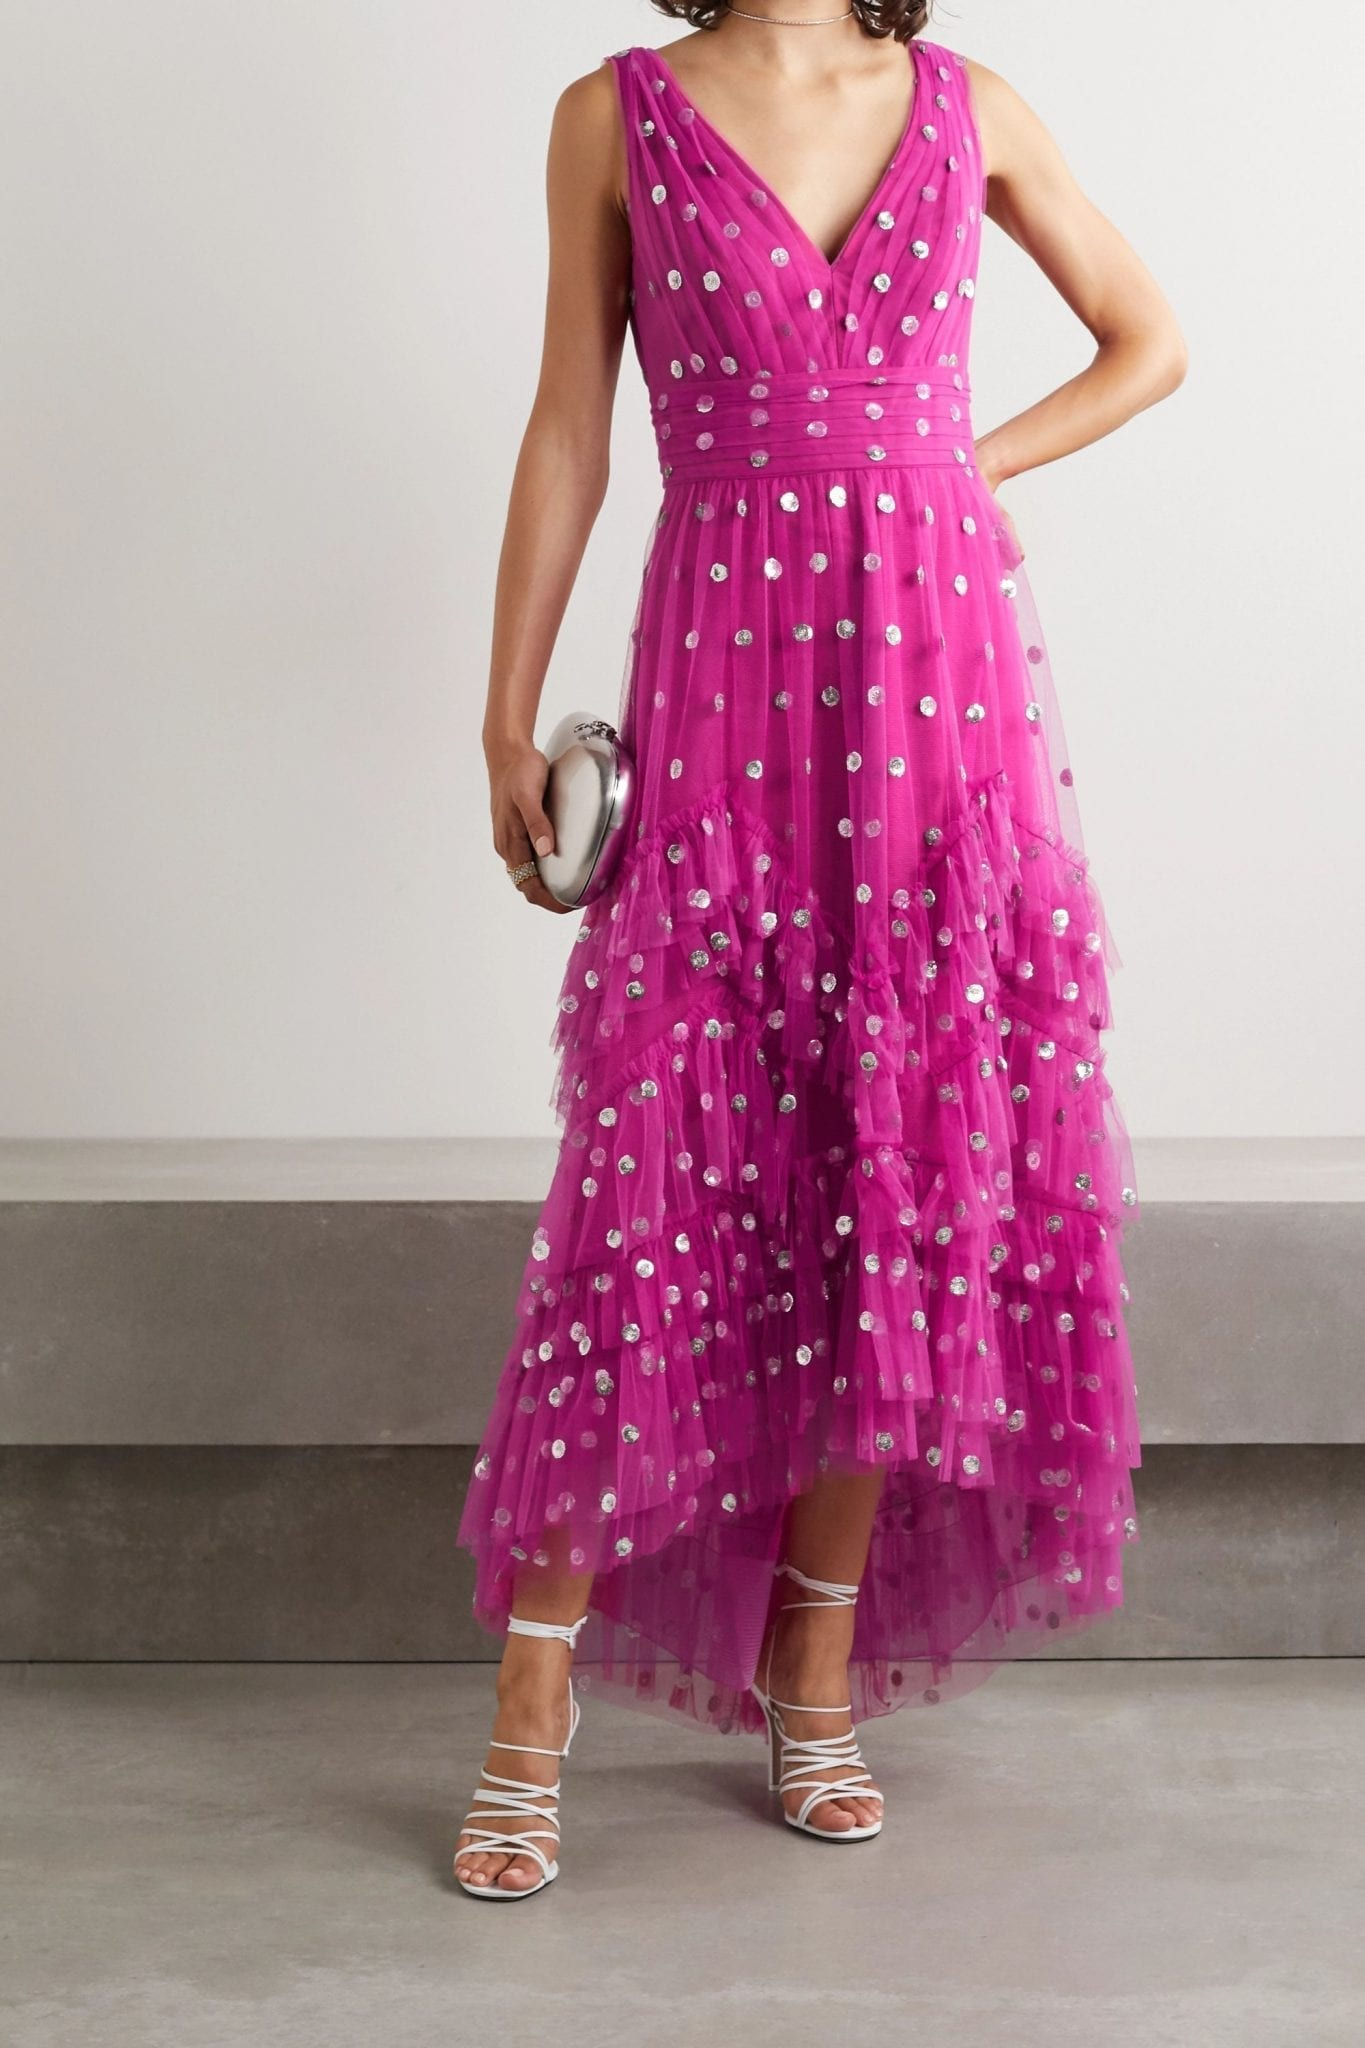 MARCHESA NOTTE Ruffled Polka-dot Sequined Tulle Gown